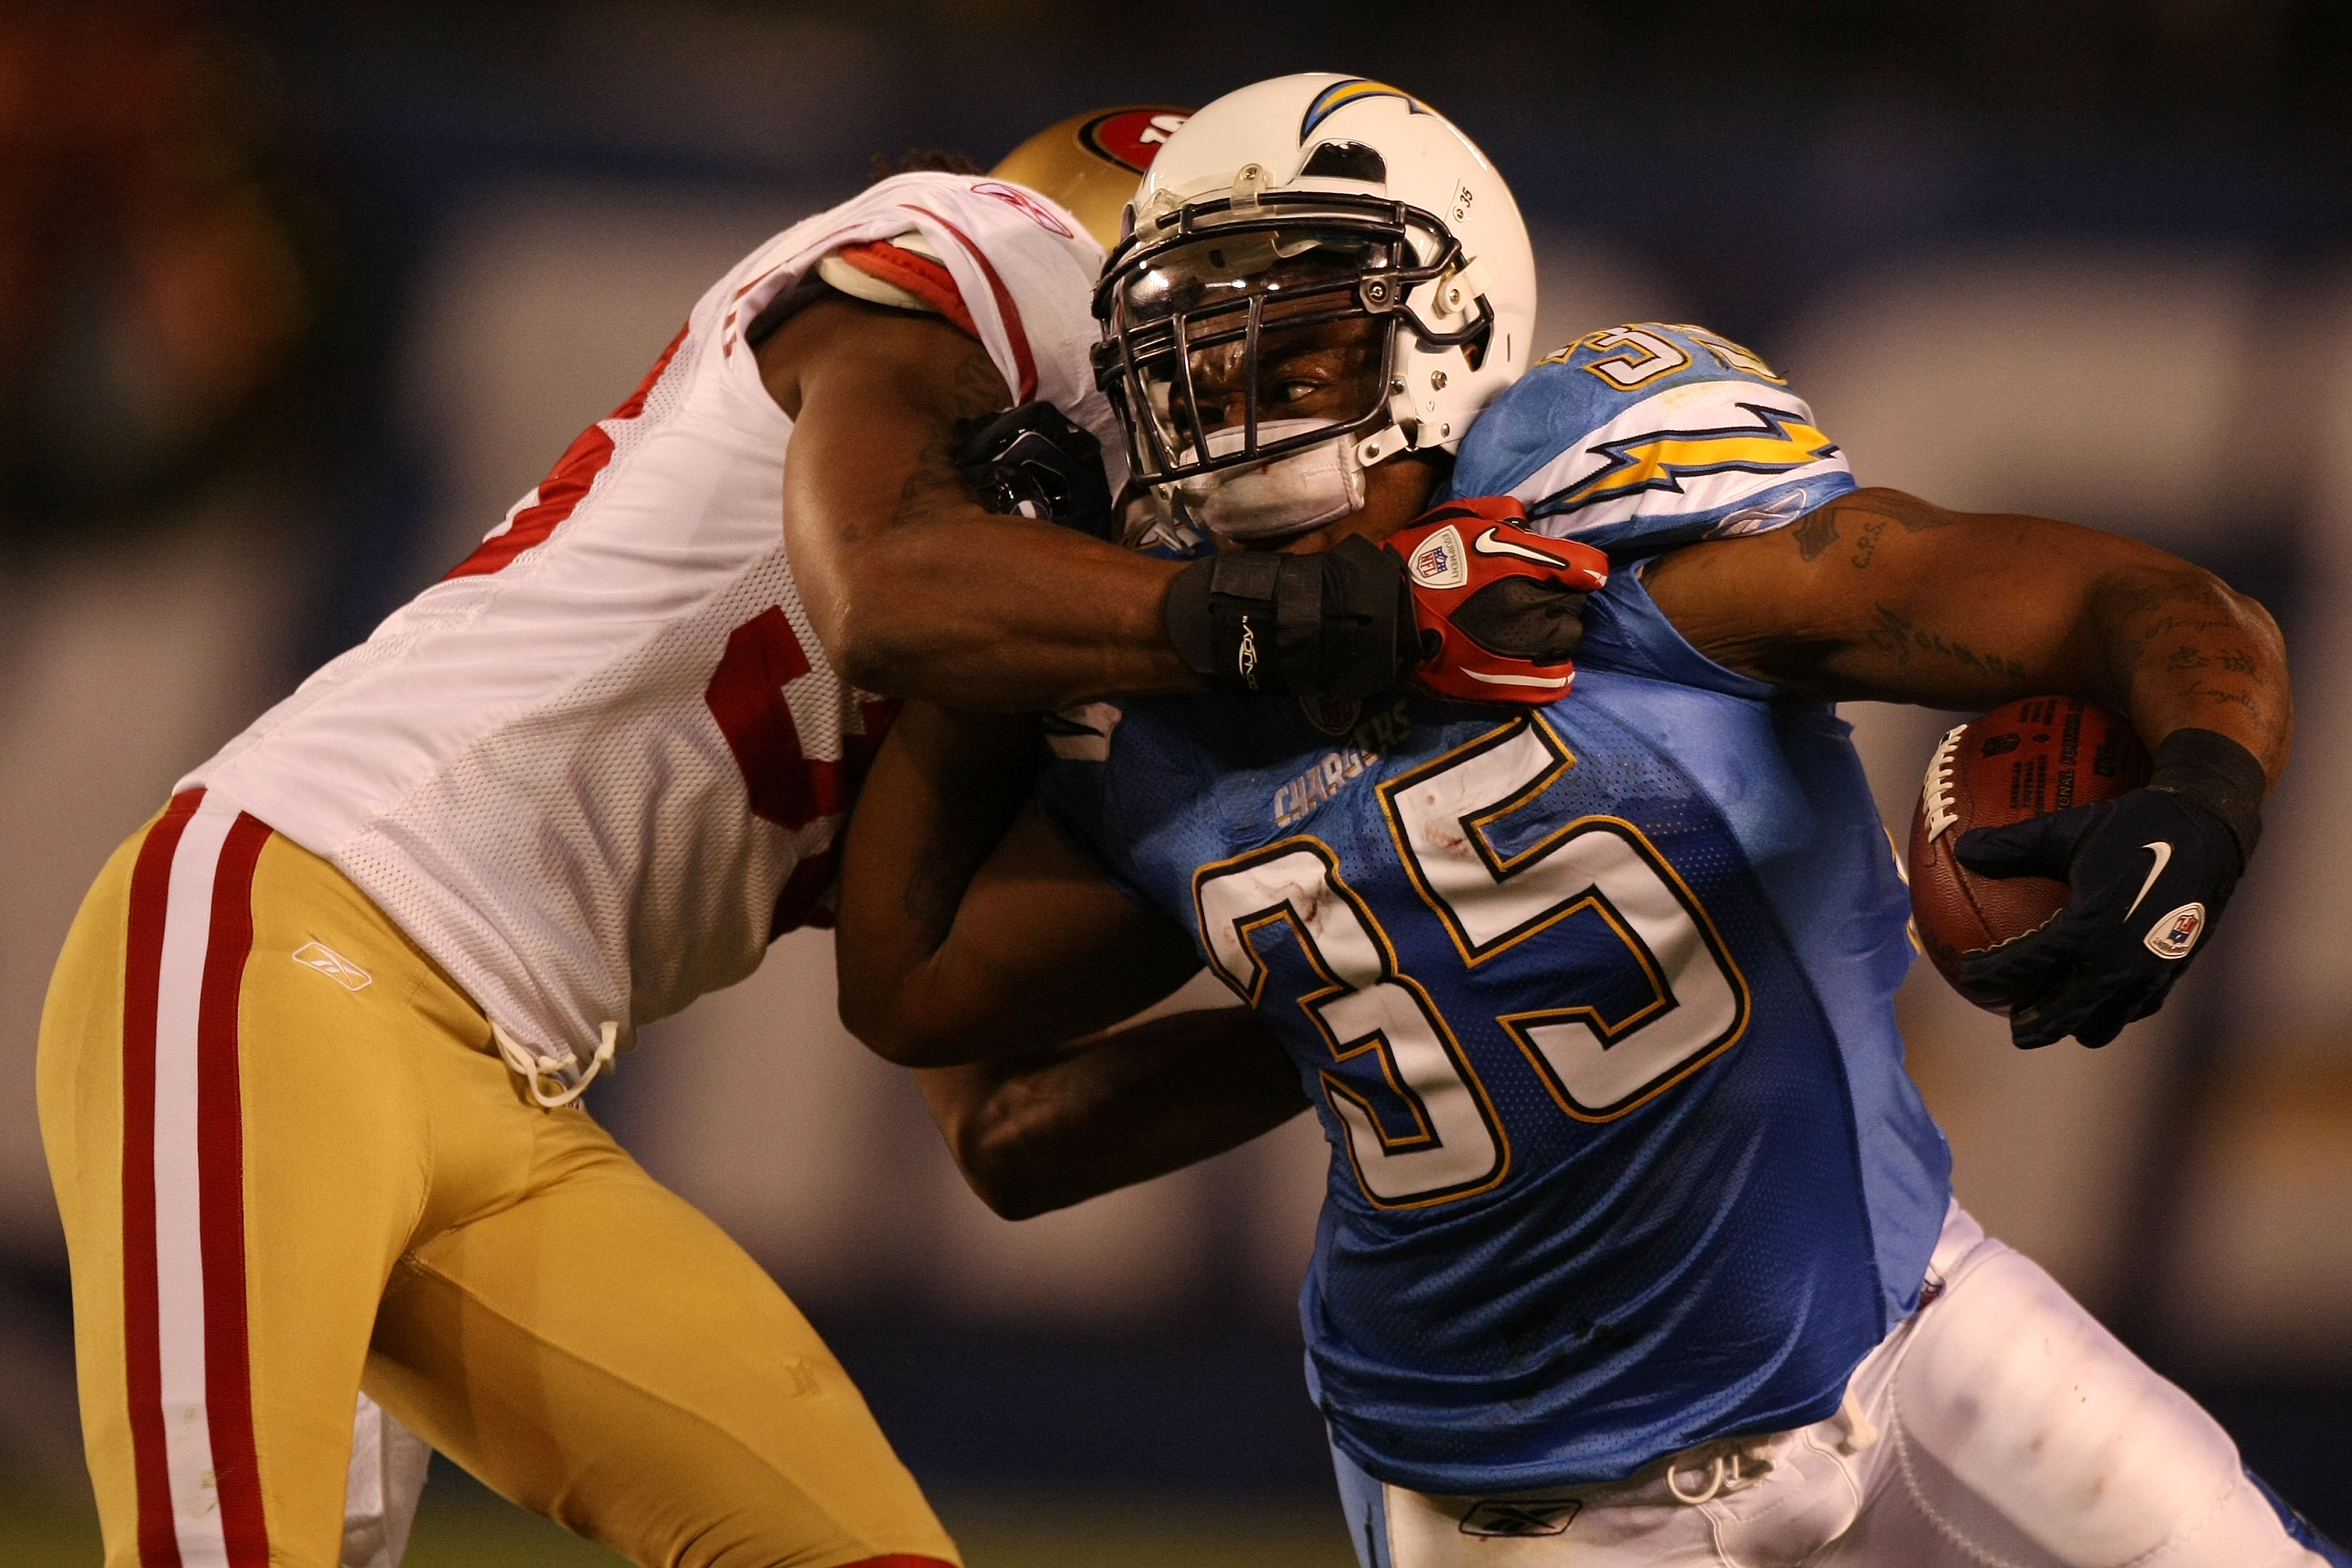 SAN DIEGO, CA - DECEMBER 16:  Running back Mike Tolbert #35 of the San Diego Chargers rushes with the ball as cornerback Shawntae Spencer #36 of the San Francisco 49ers trys to tackle him at Qualcomm Stadium on December 16, 2010 in San Diego, California.